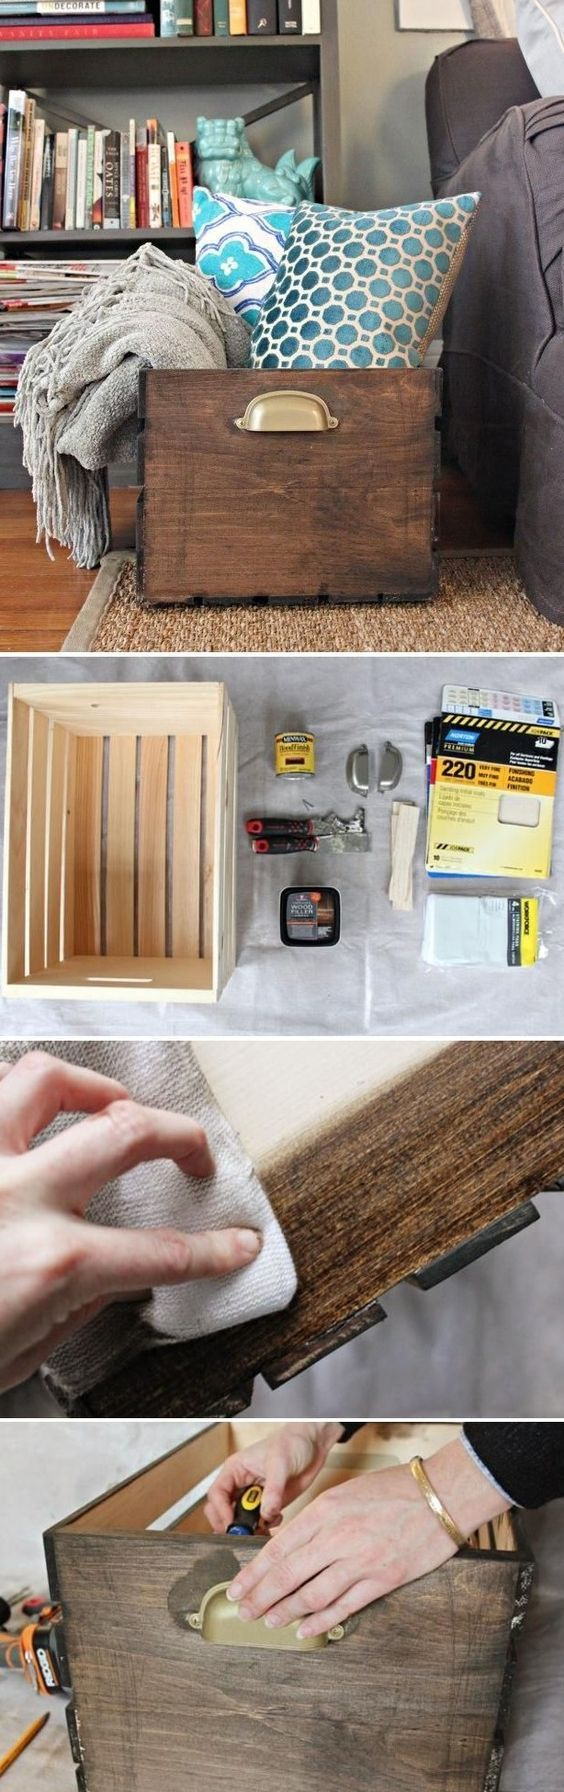 By using wood stain and cabinet hardware, you can build and customize a DIY Wooden Storage Crate, giving it a polished look.